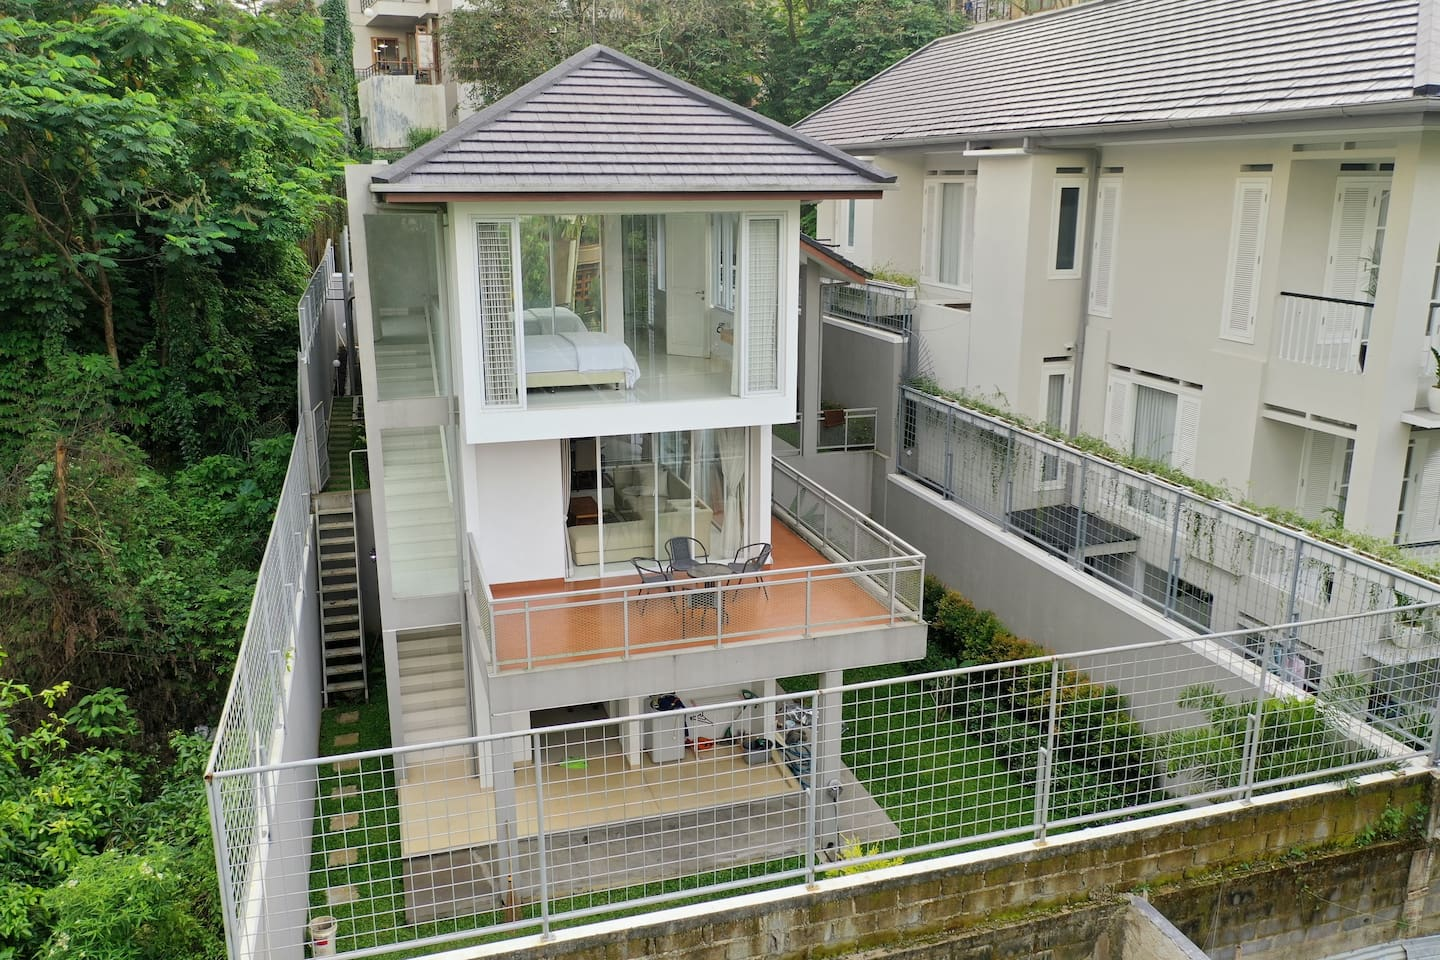 3 separate floors with beautiful garden